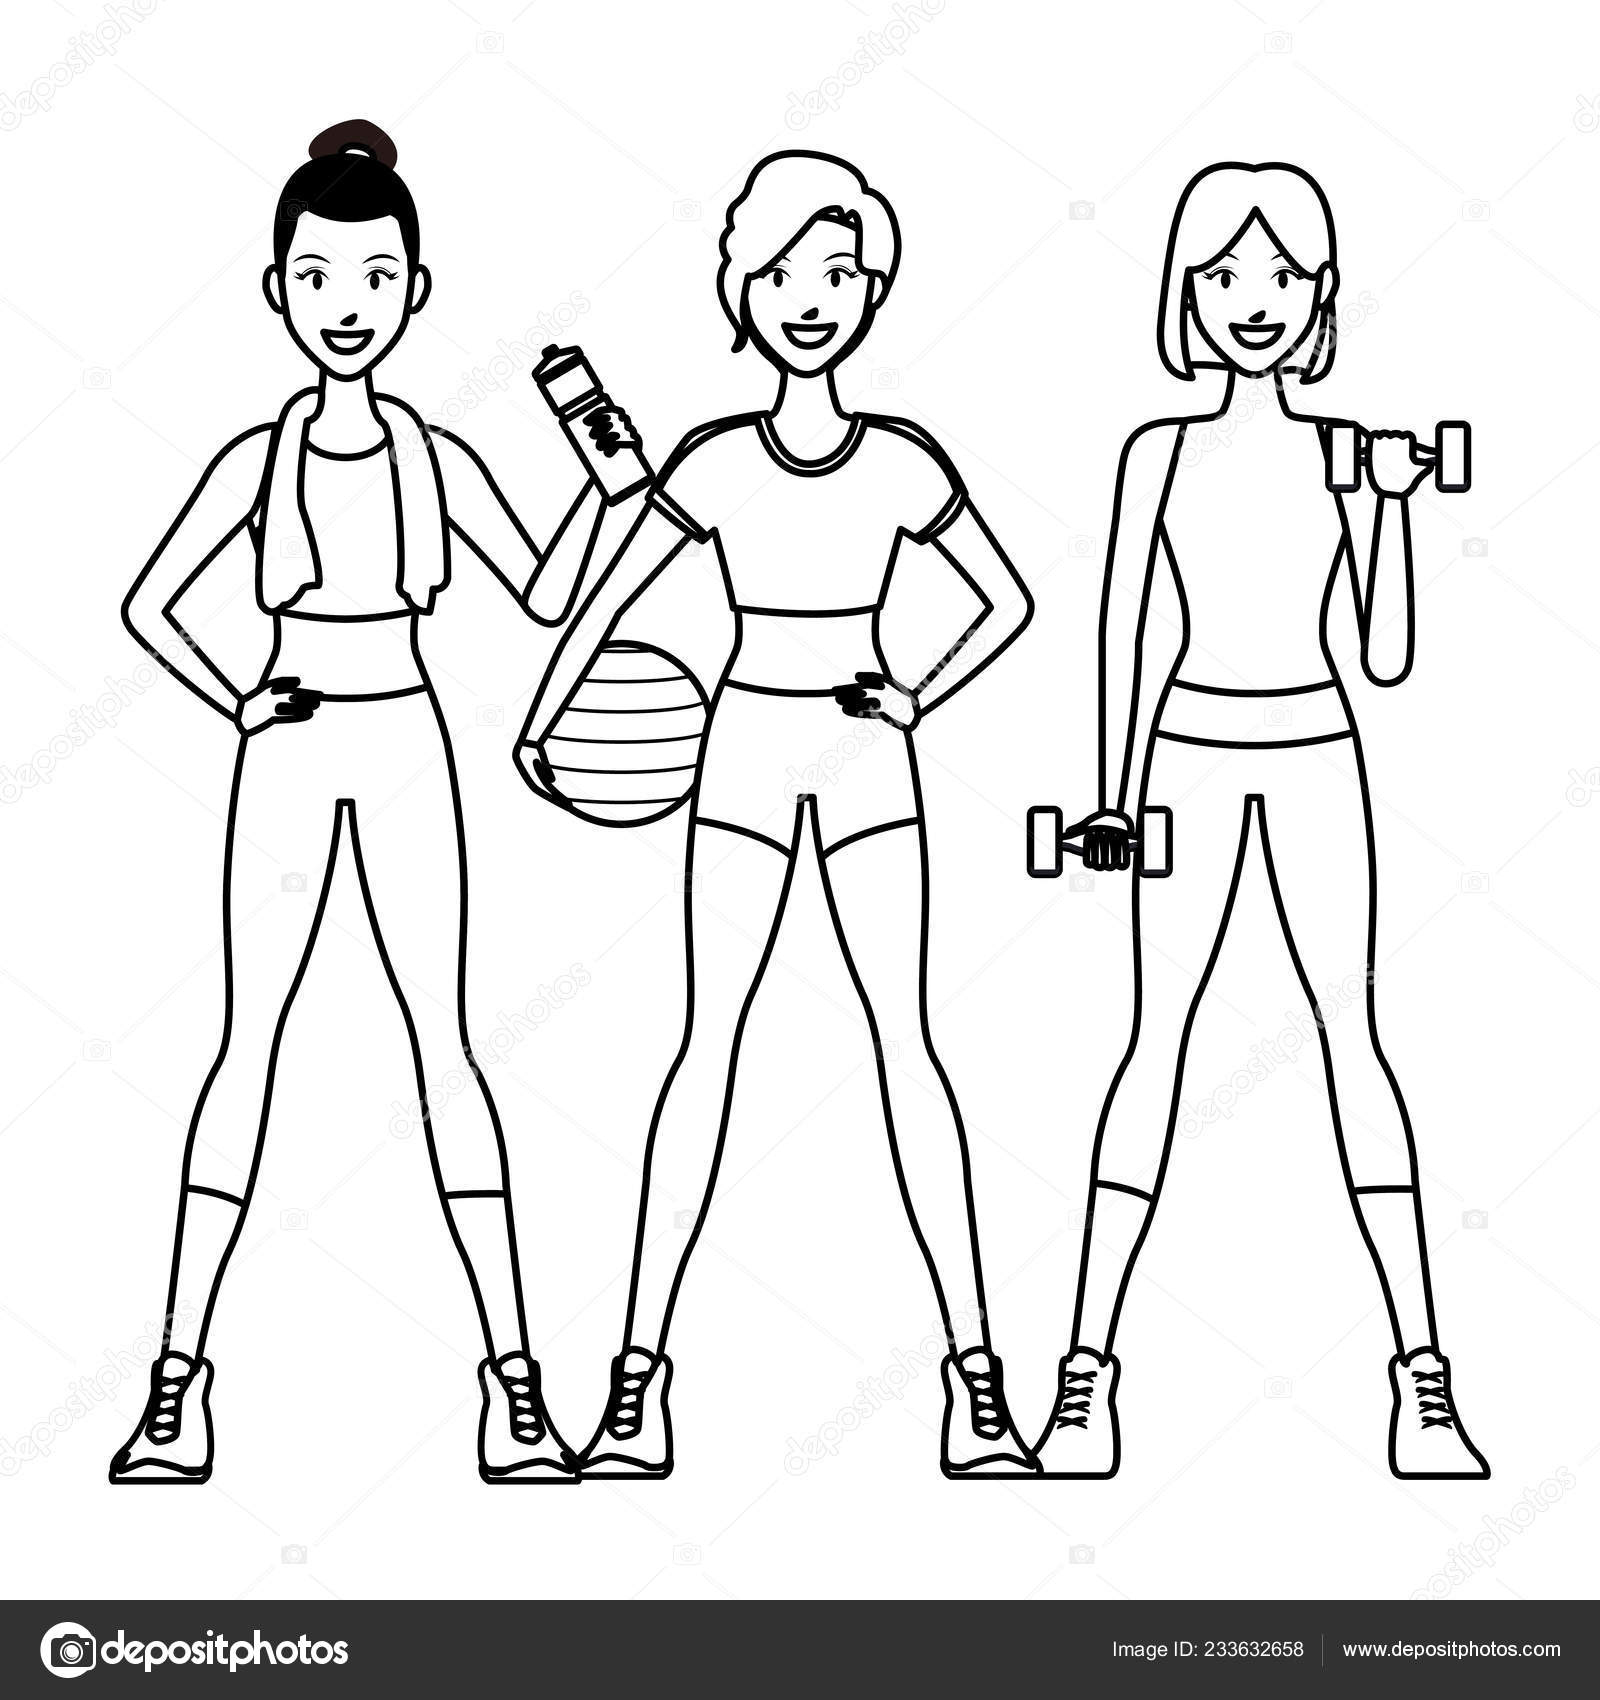 Fit Women Doing Exercise Stock Vector C Jemastock 233632658 Free sketch vector personal use. depositphotos